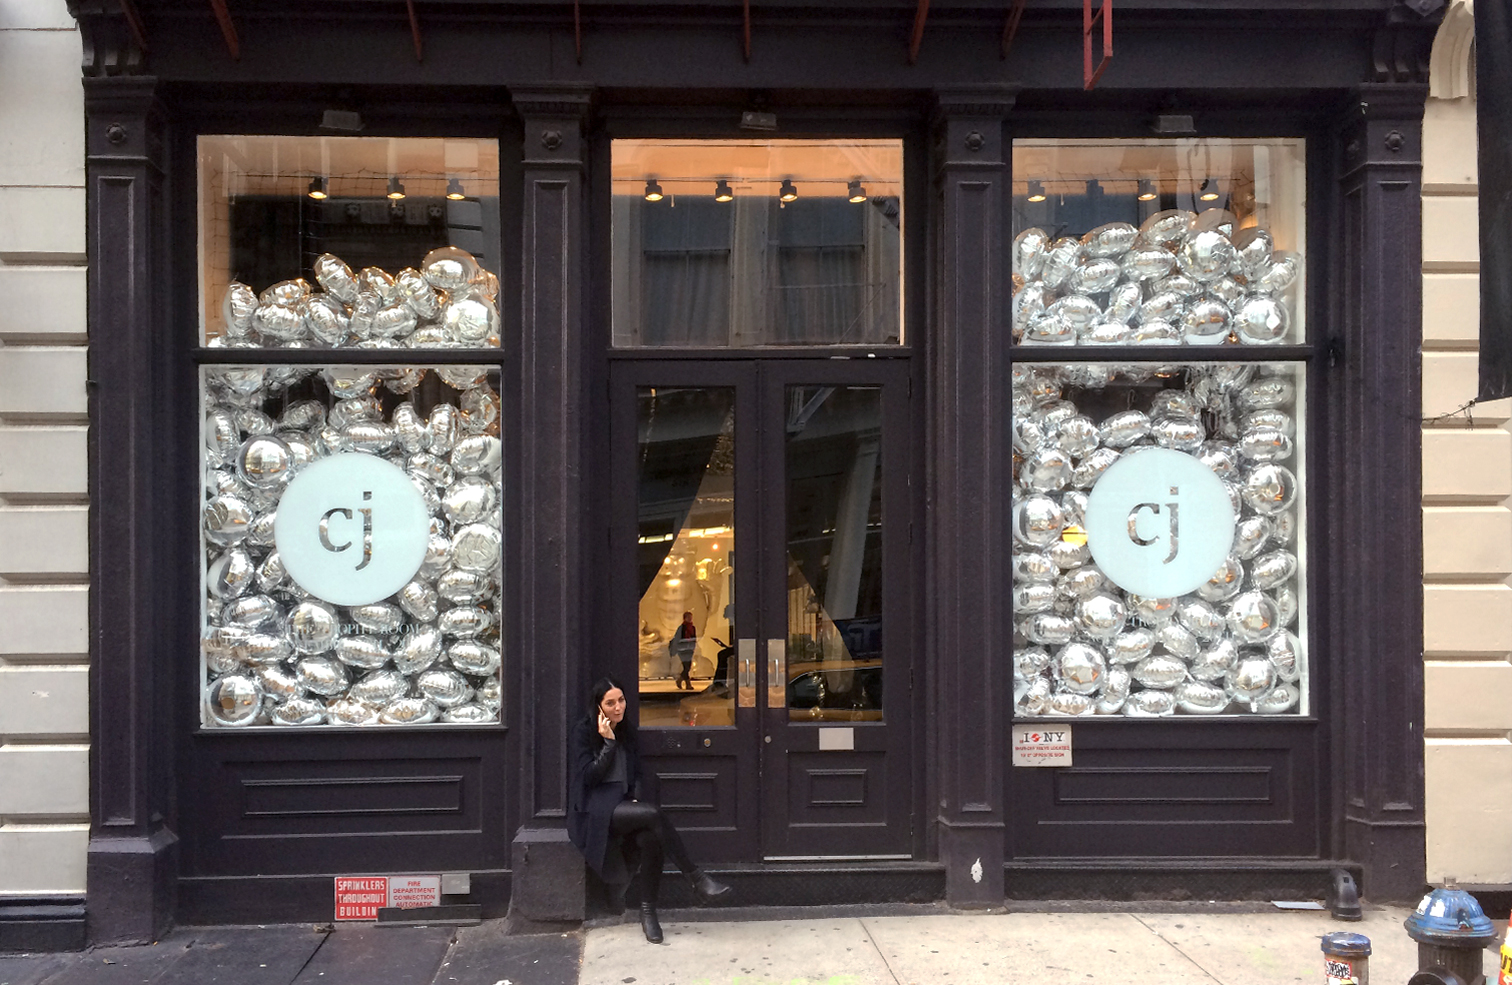 CJ Hendry Gallery, Tribeca